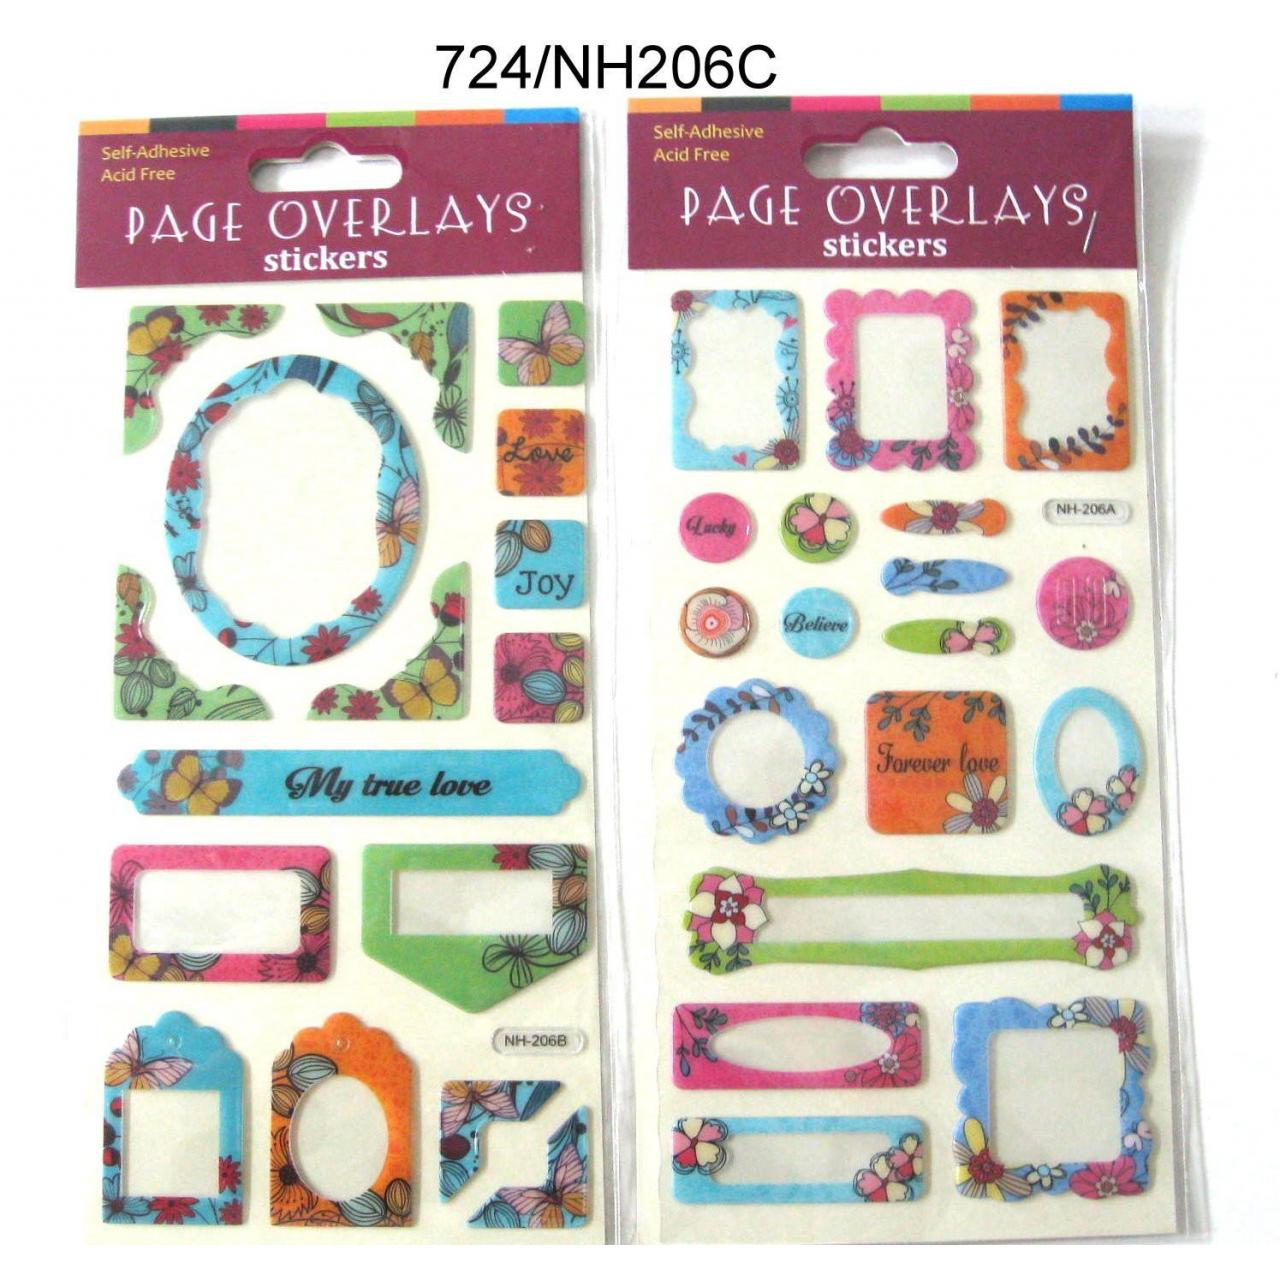 2 PHOTO FRAME PAGE OVERLAYS STICKER